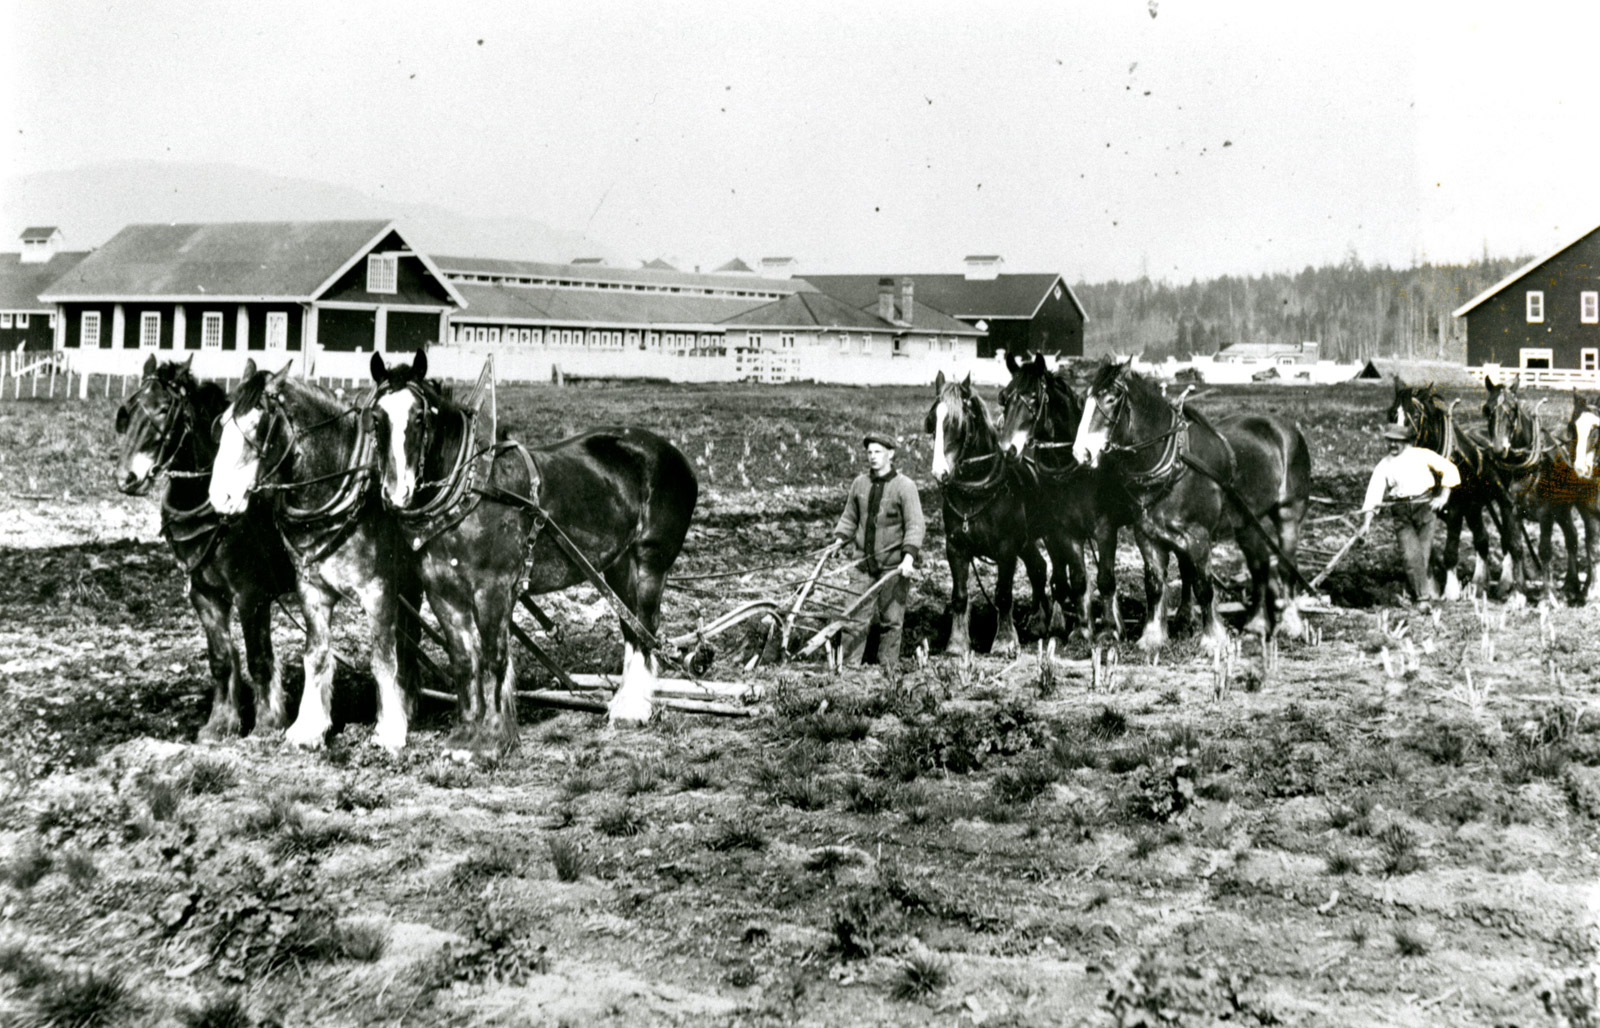 Workers at Colony Farm, 1913